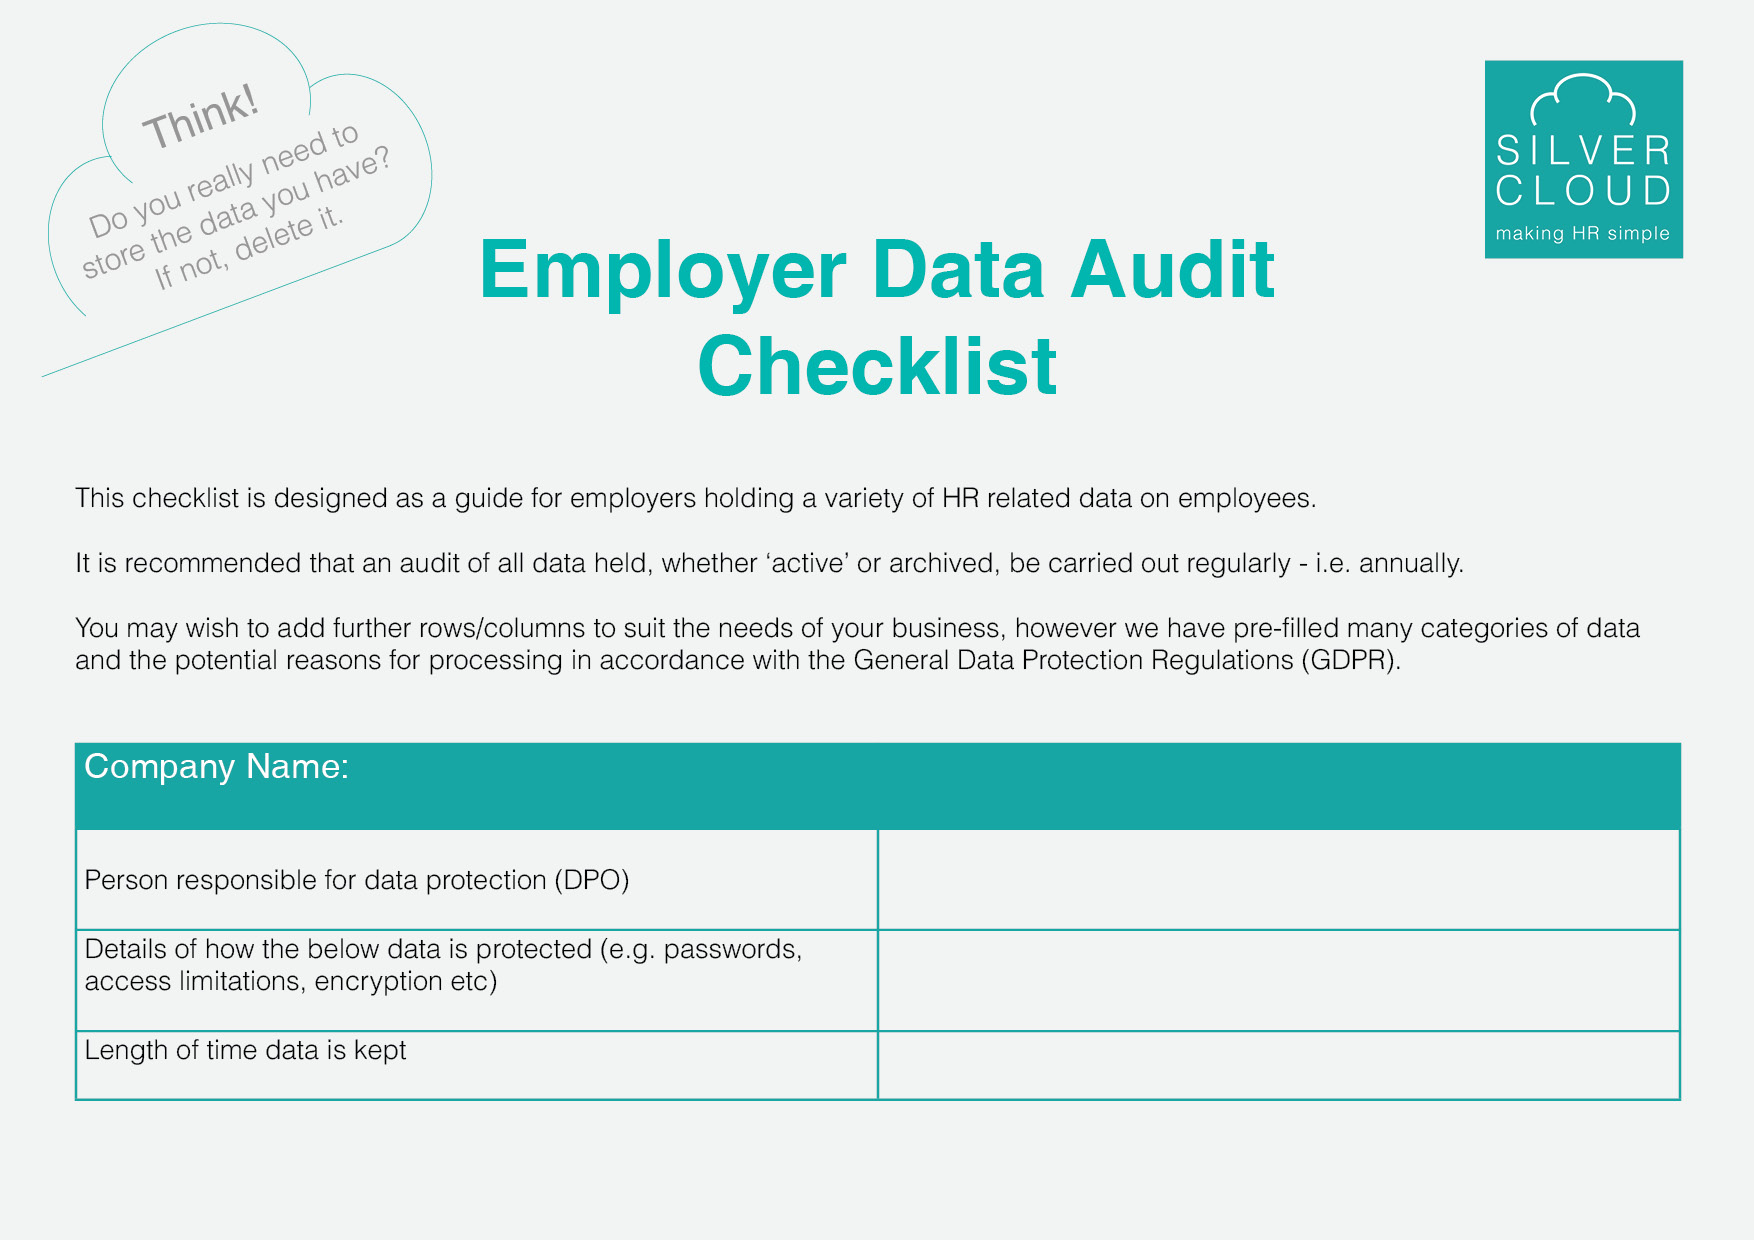 Employer Data Audit Checklist